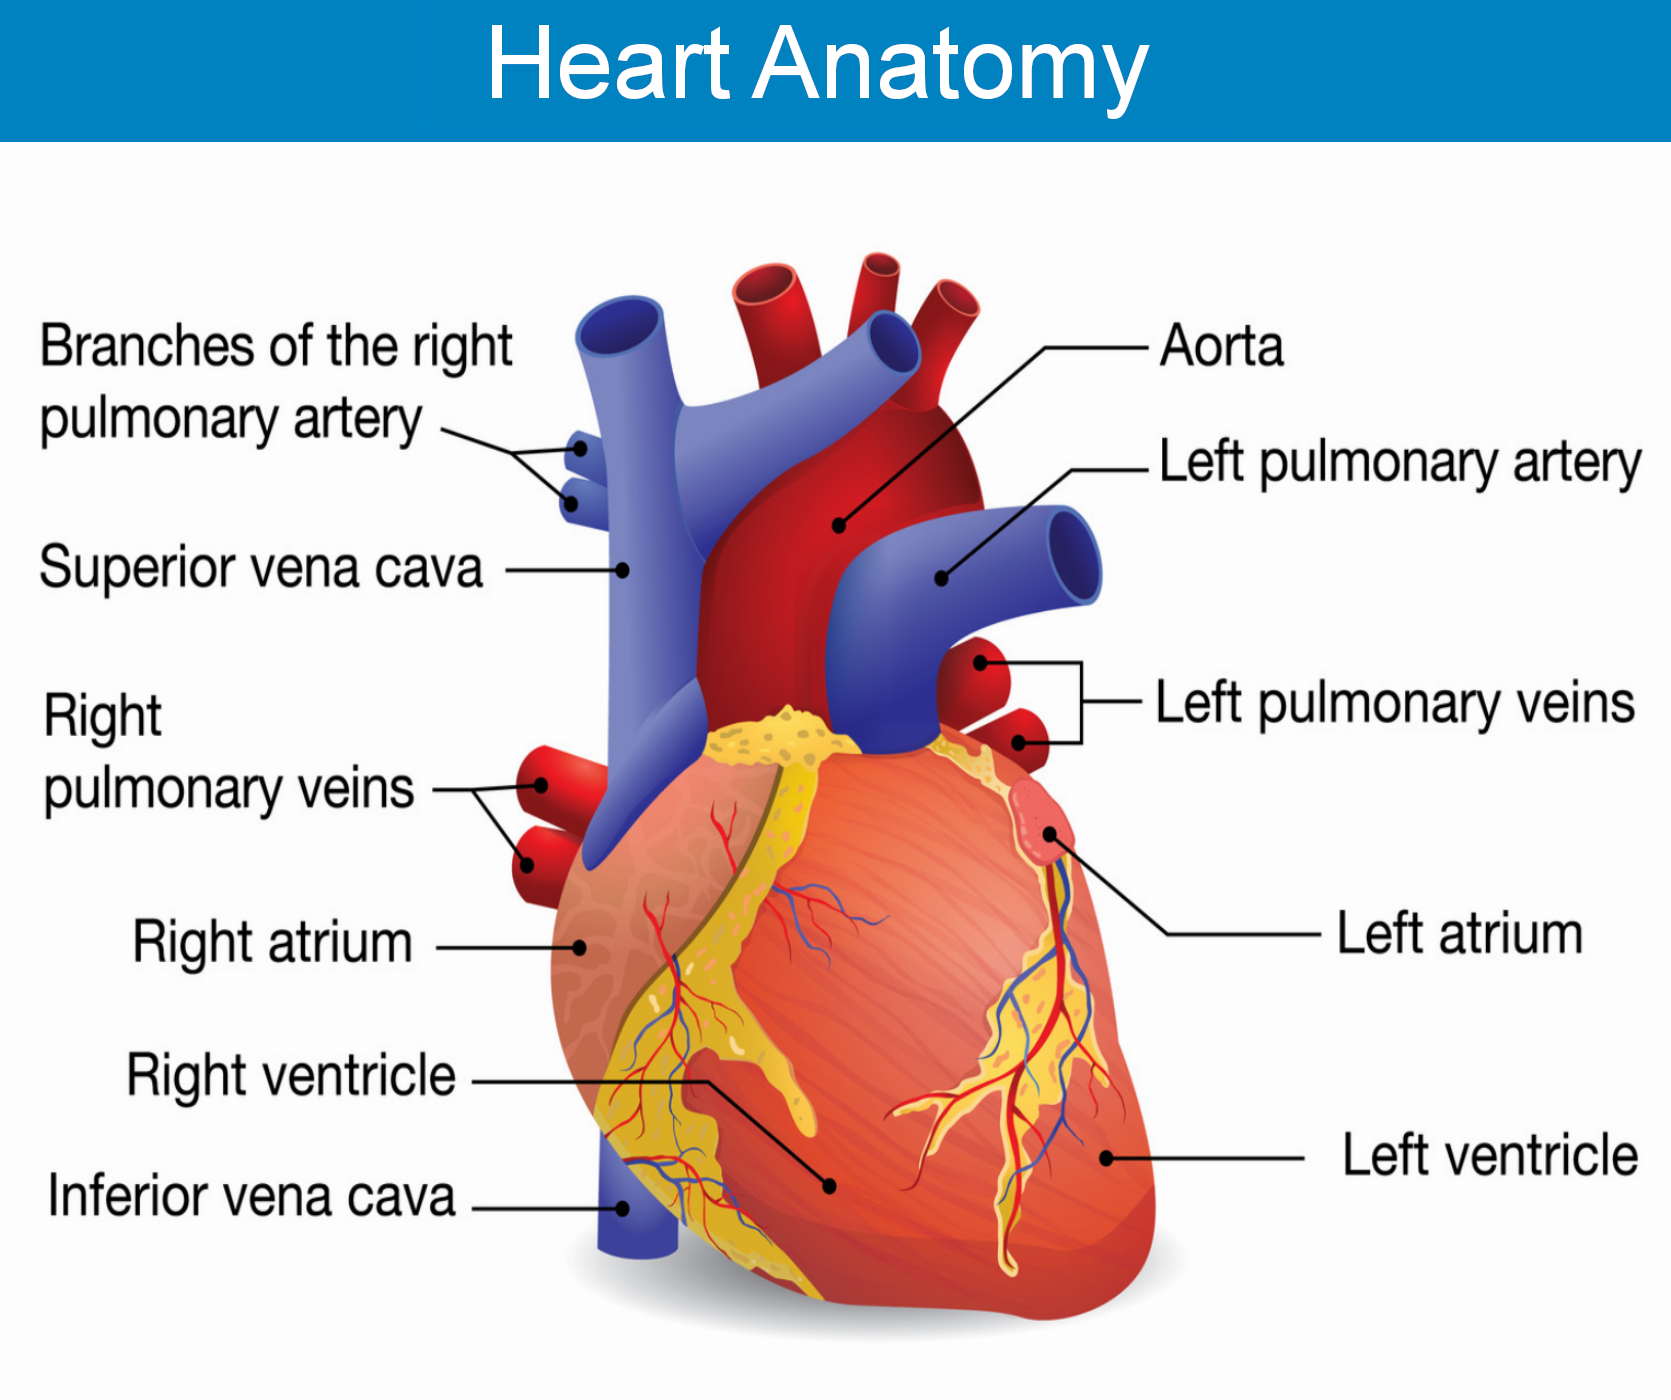 Heart standard first aid online certification course cardiac arrest human heart anatomy cardiac arrest warning signs cardiac arrest help 1betcityfo Gallery